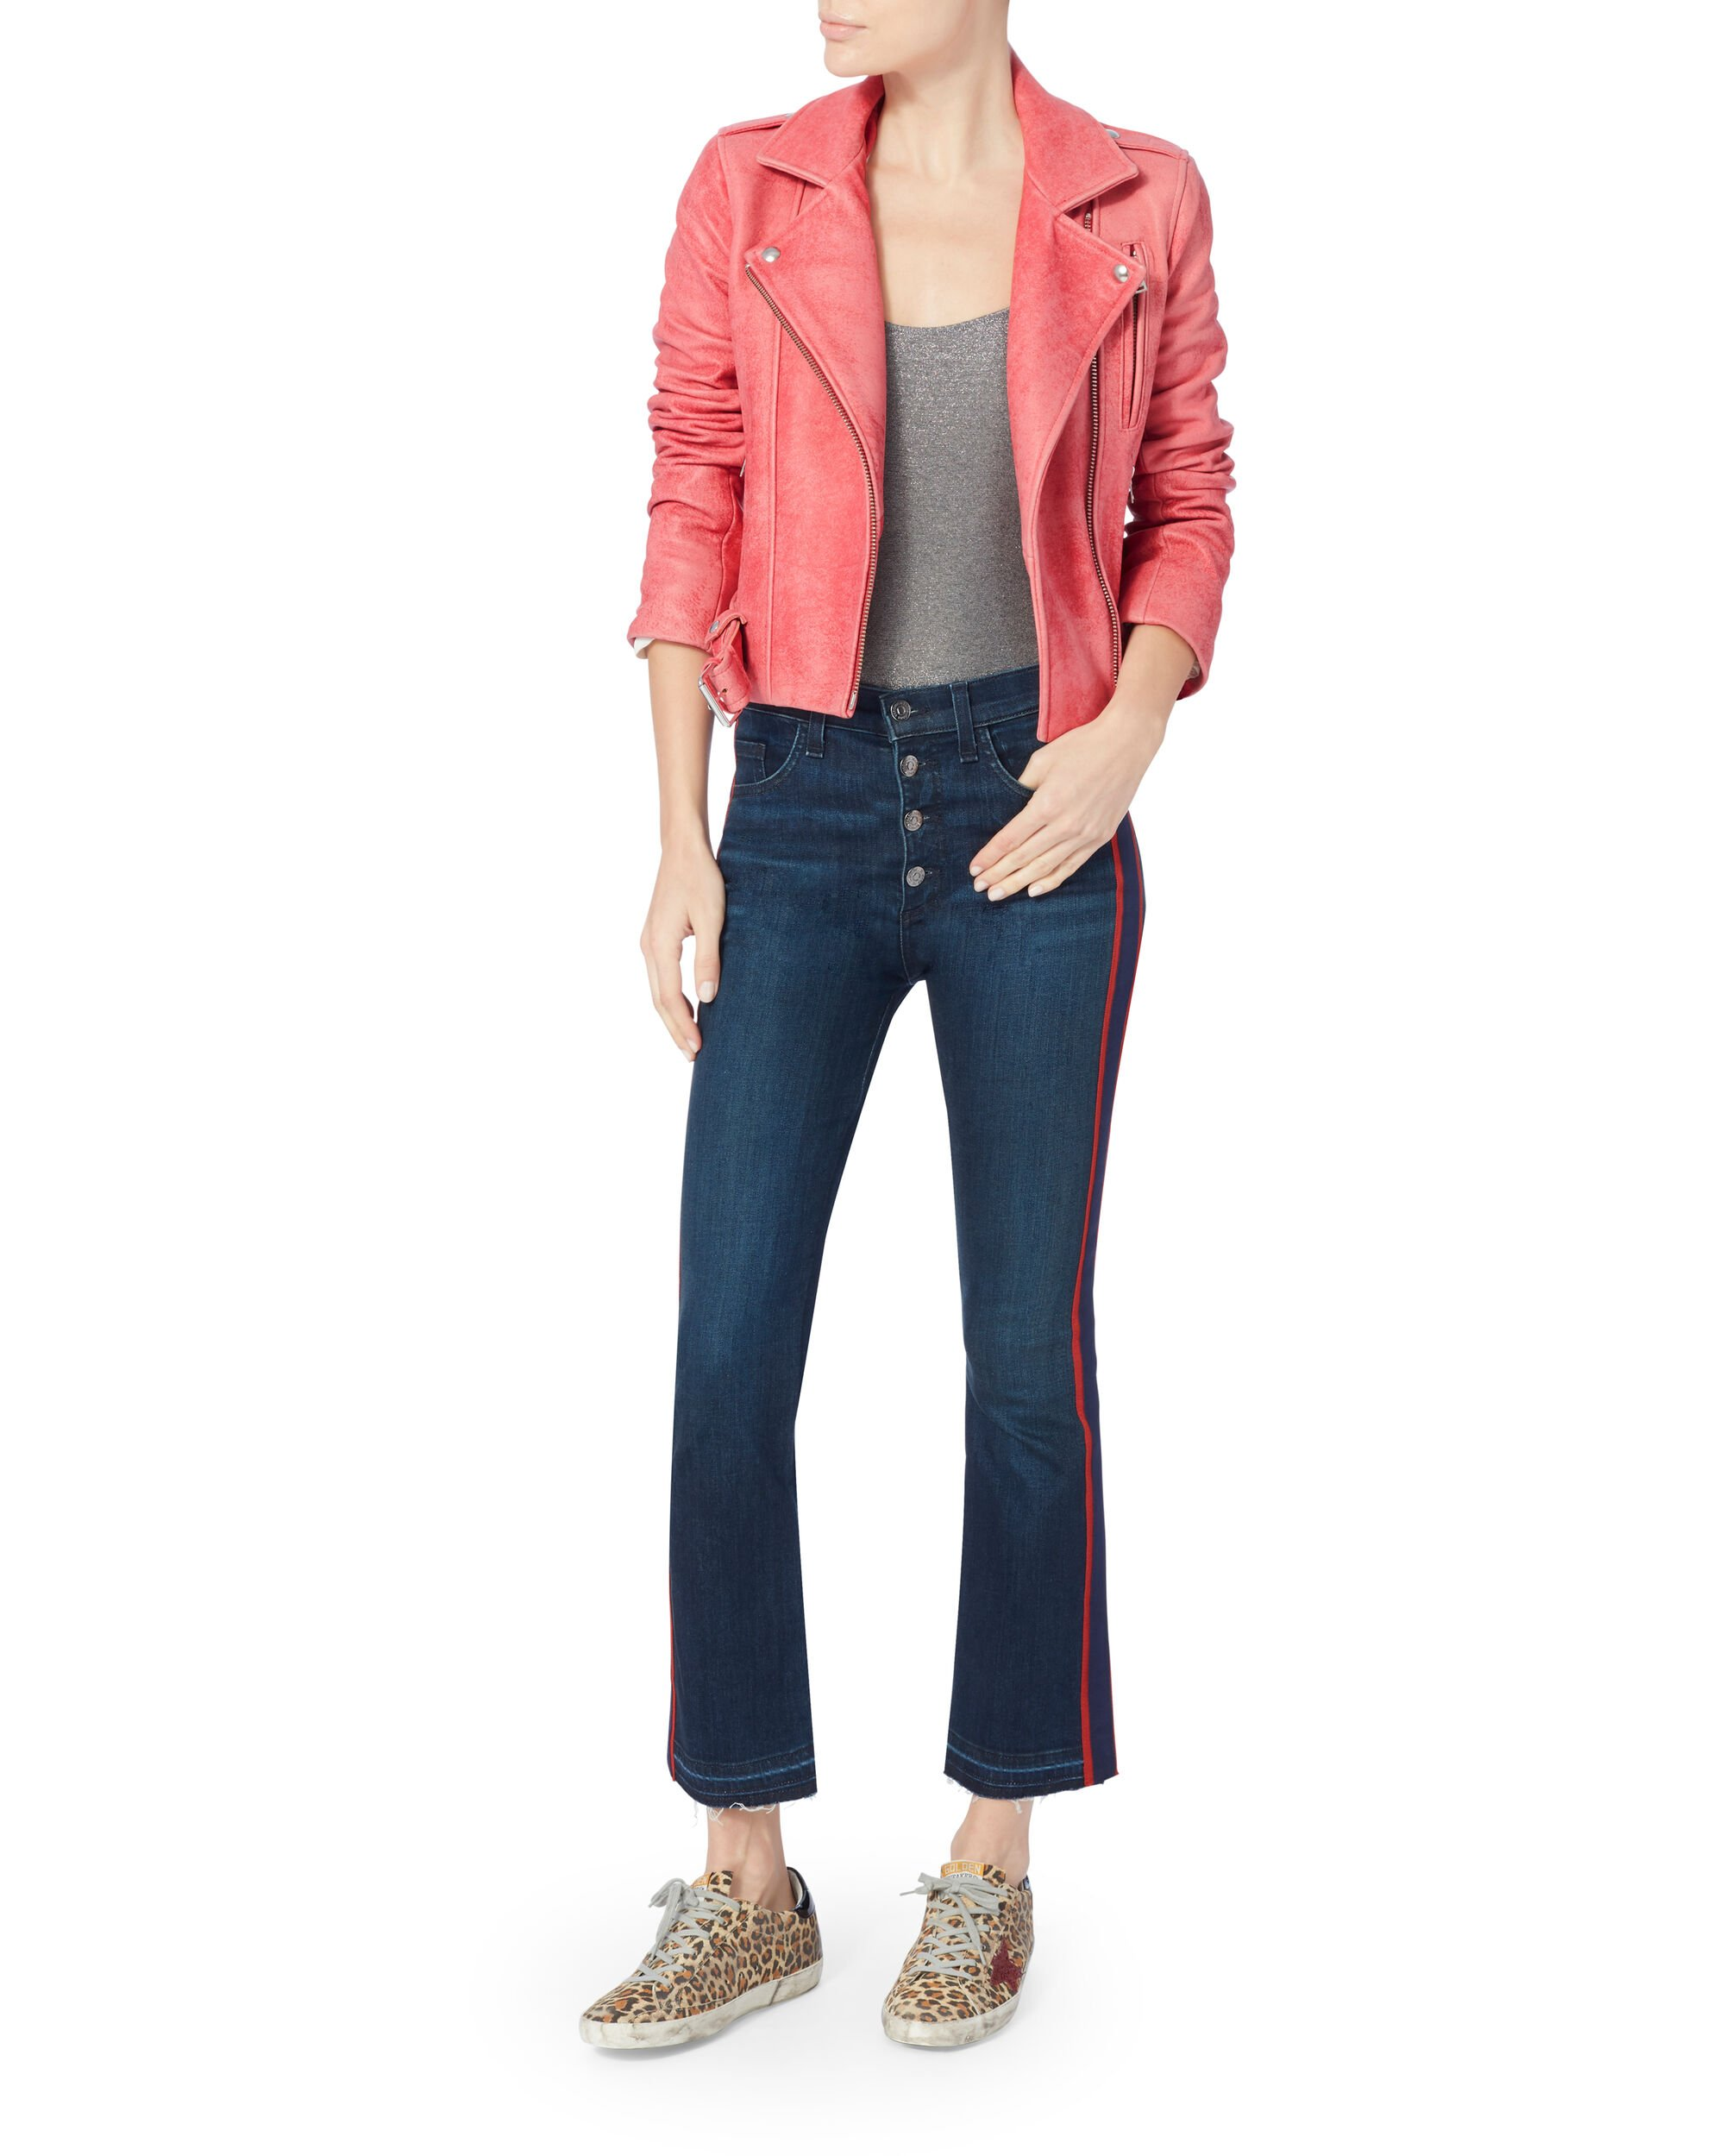 Leah Combo Leather Jacket, PINK, hi-res